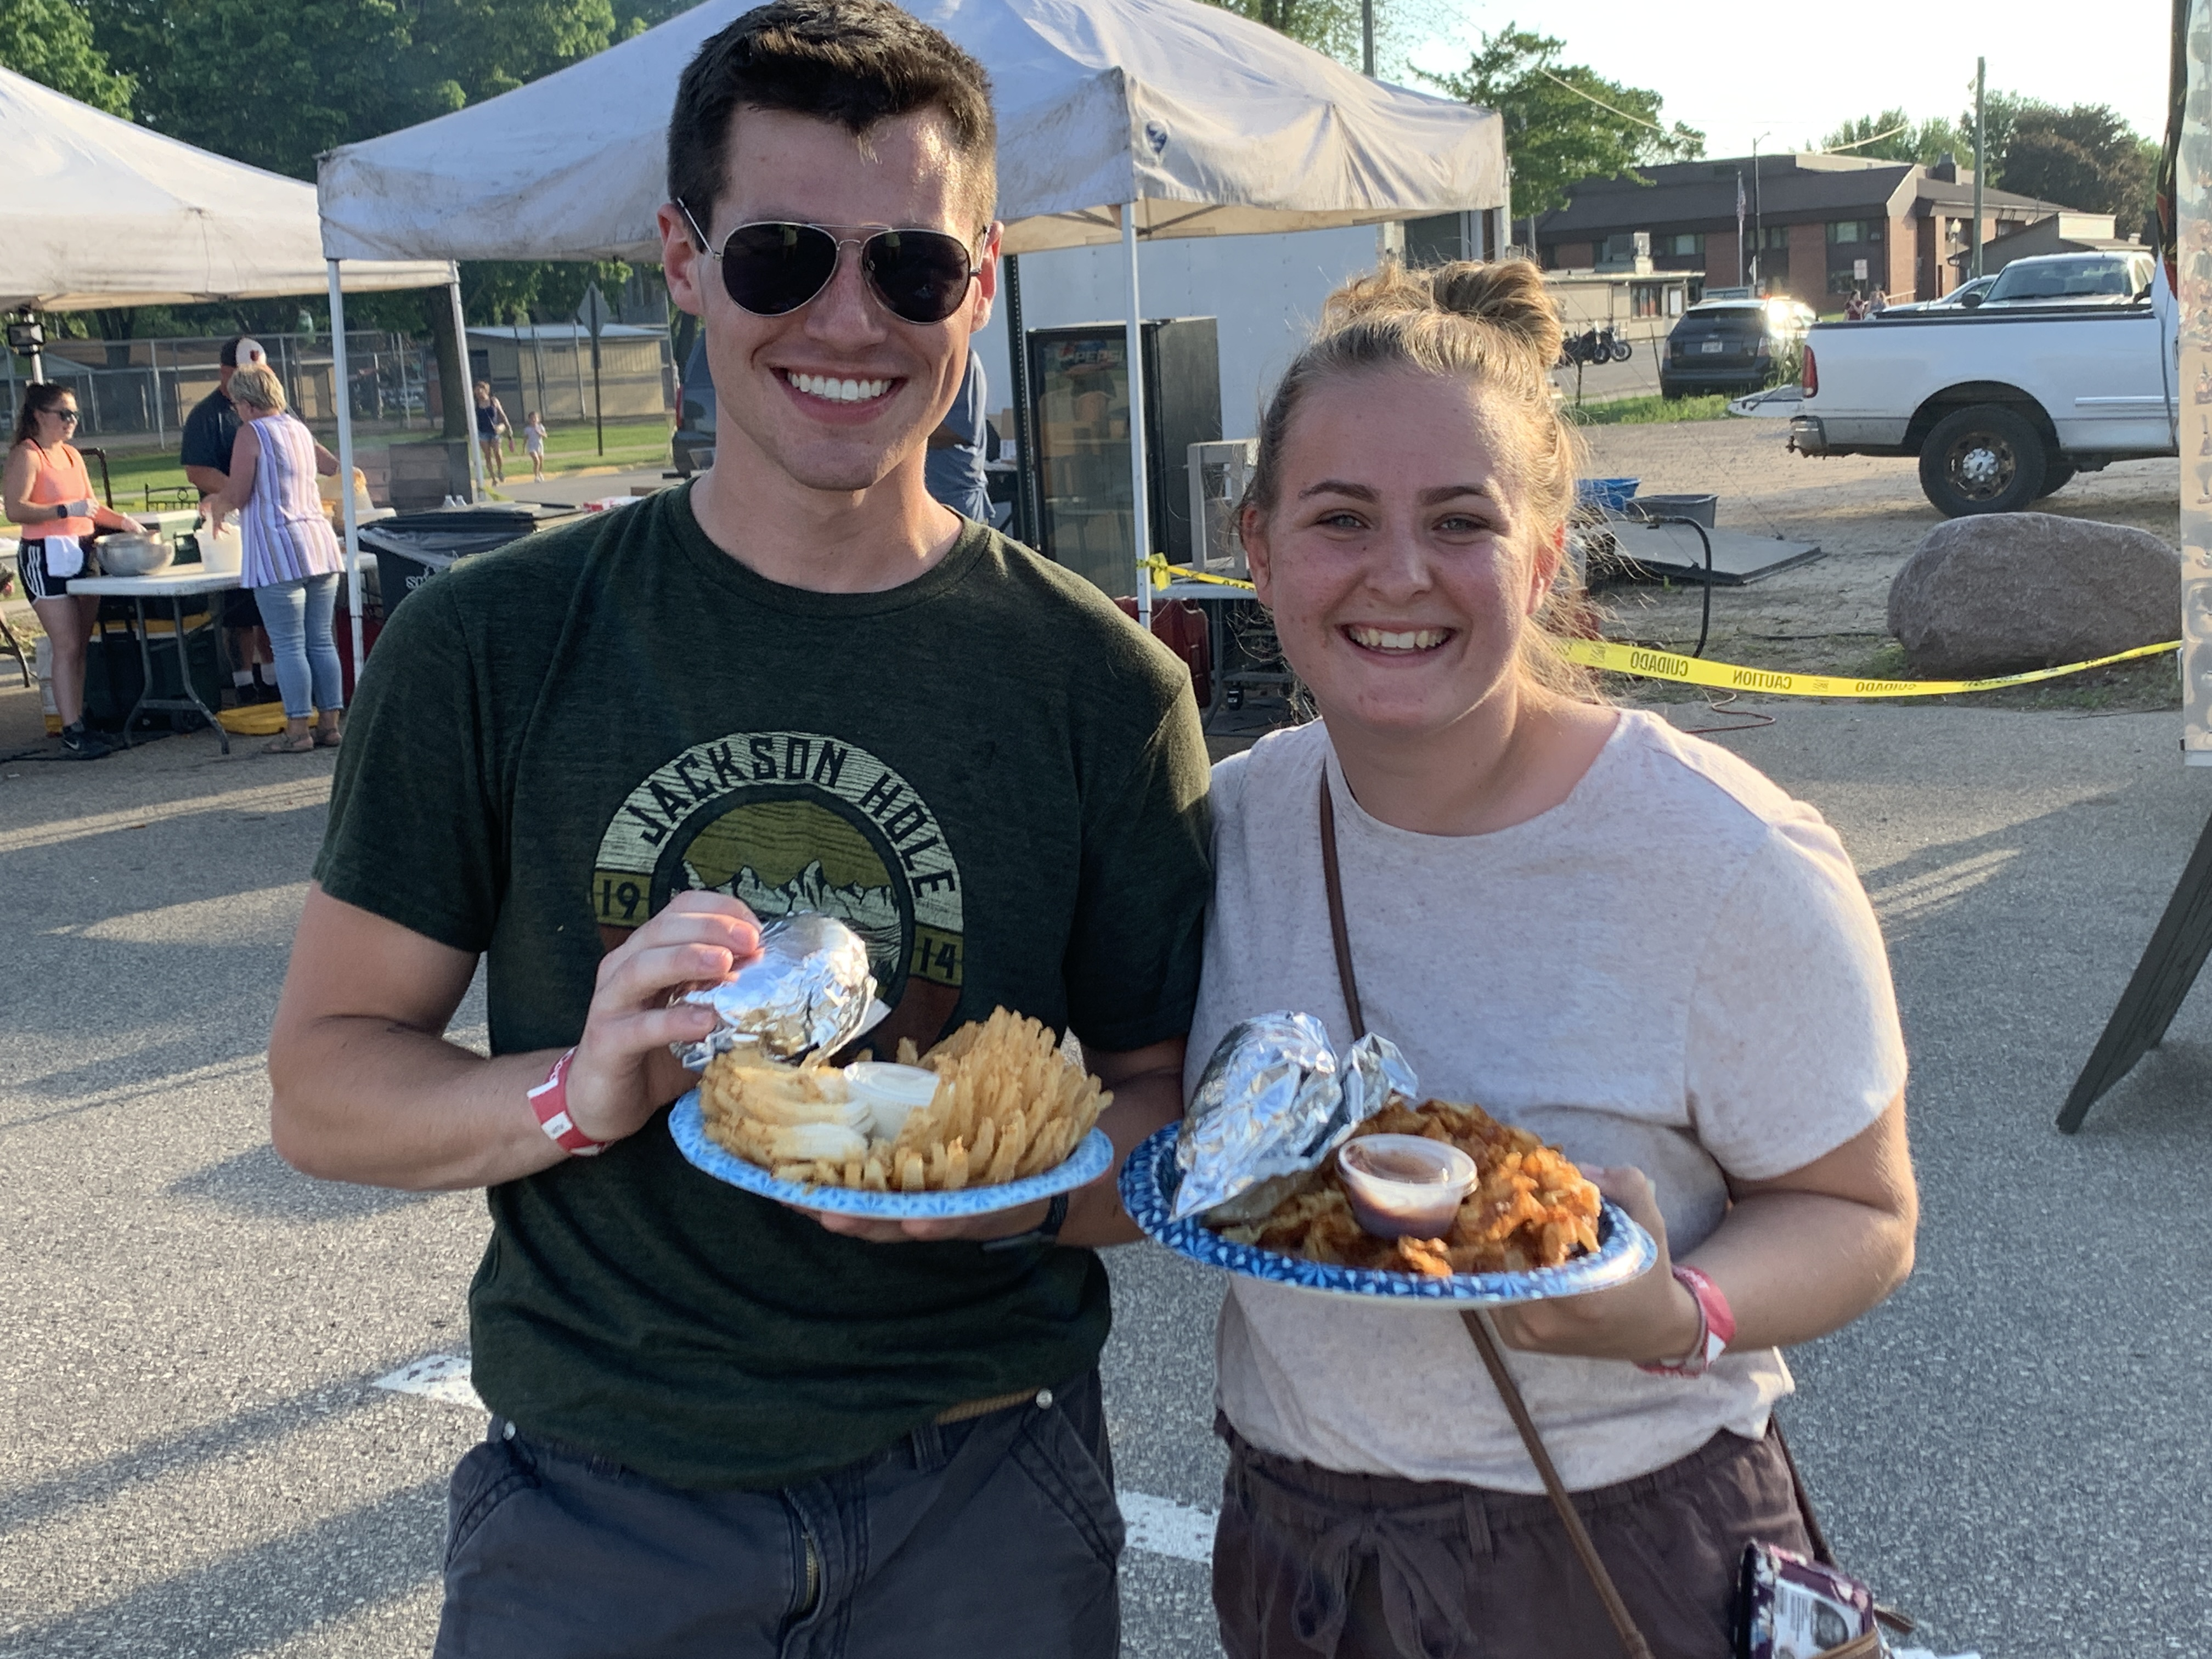 From left, Shawano residents, Braxton Oroes and Emma Schmidt show off the food that they got from the various food trucks on site June 5. Oroes shows off his blooming onion, and Schmidt shows off her plate of french fries.Luke Reimer   NEW Media